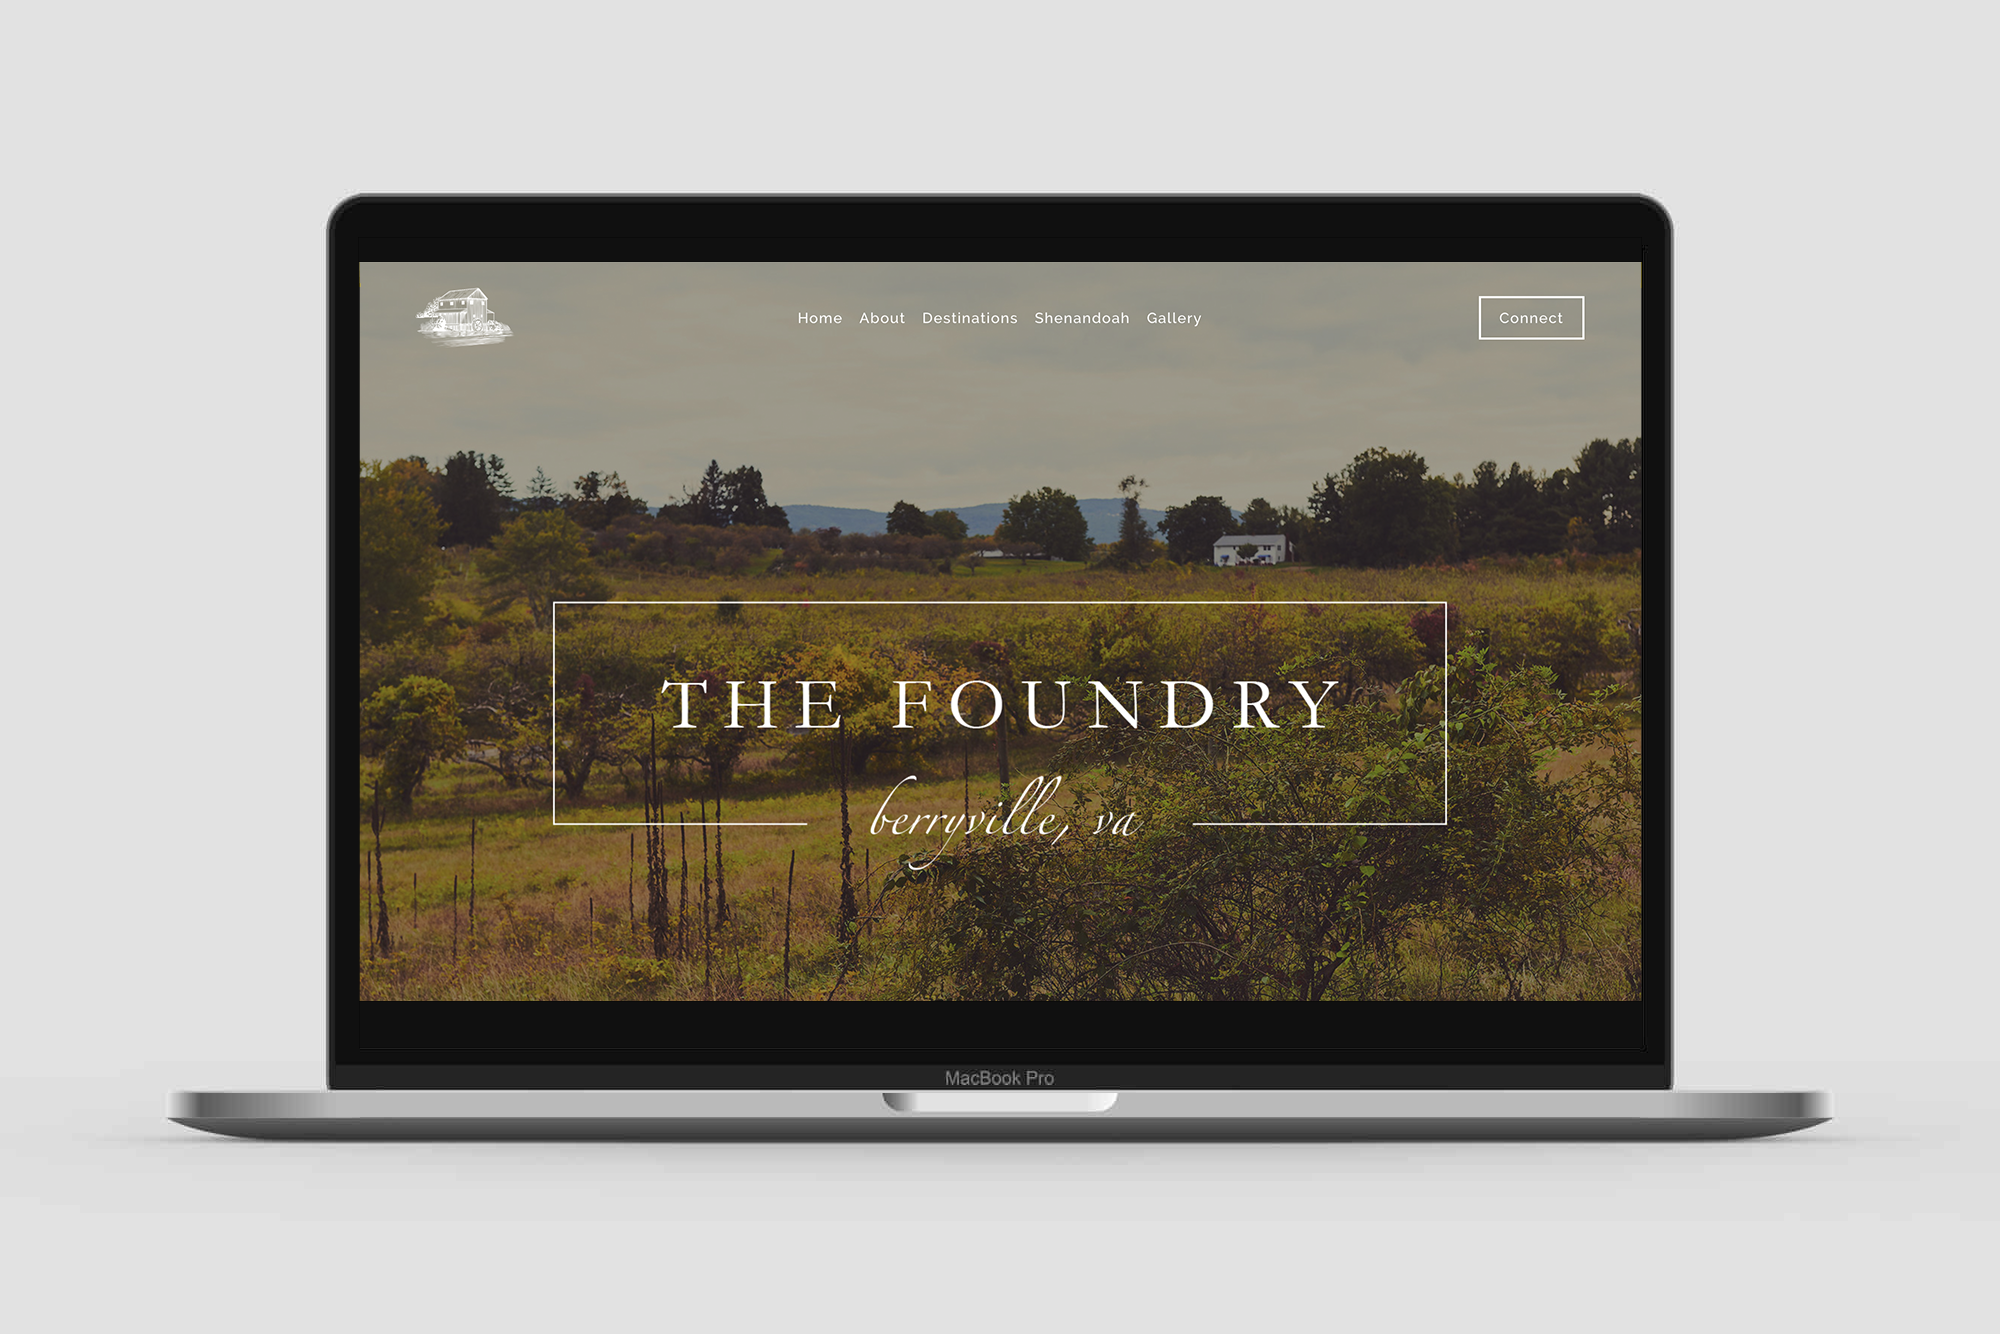 foundry_website_1.png